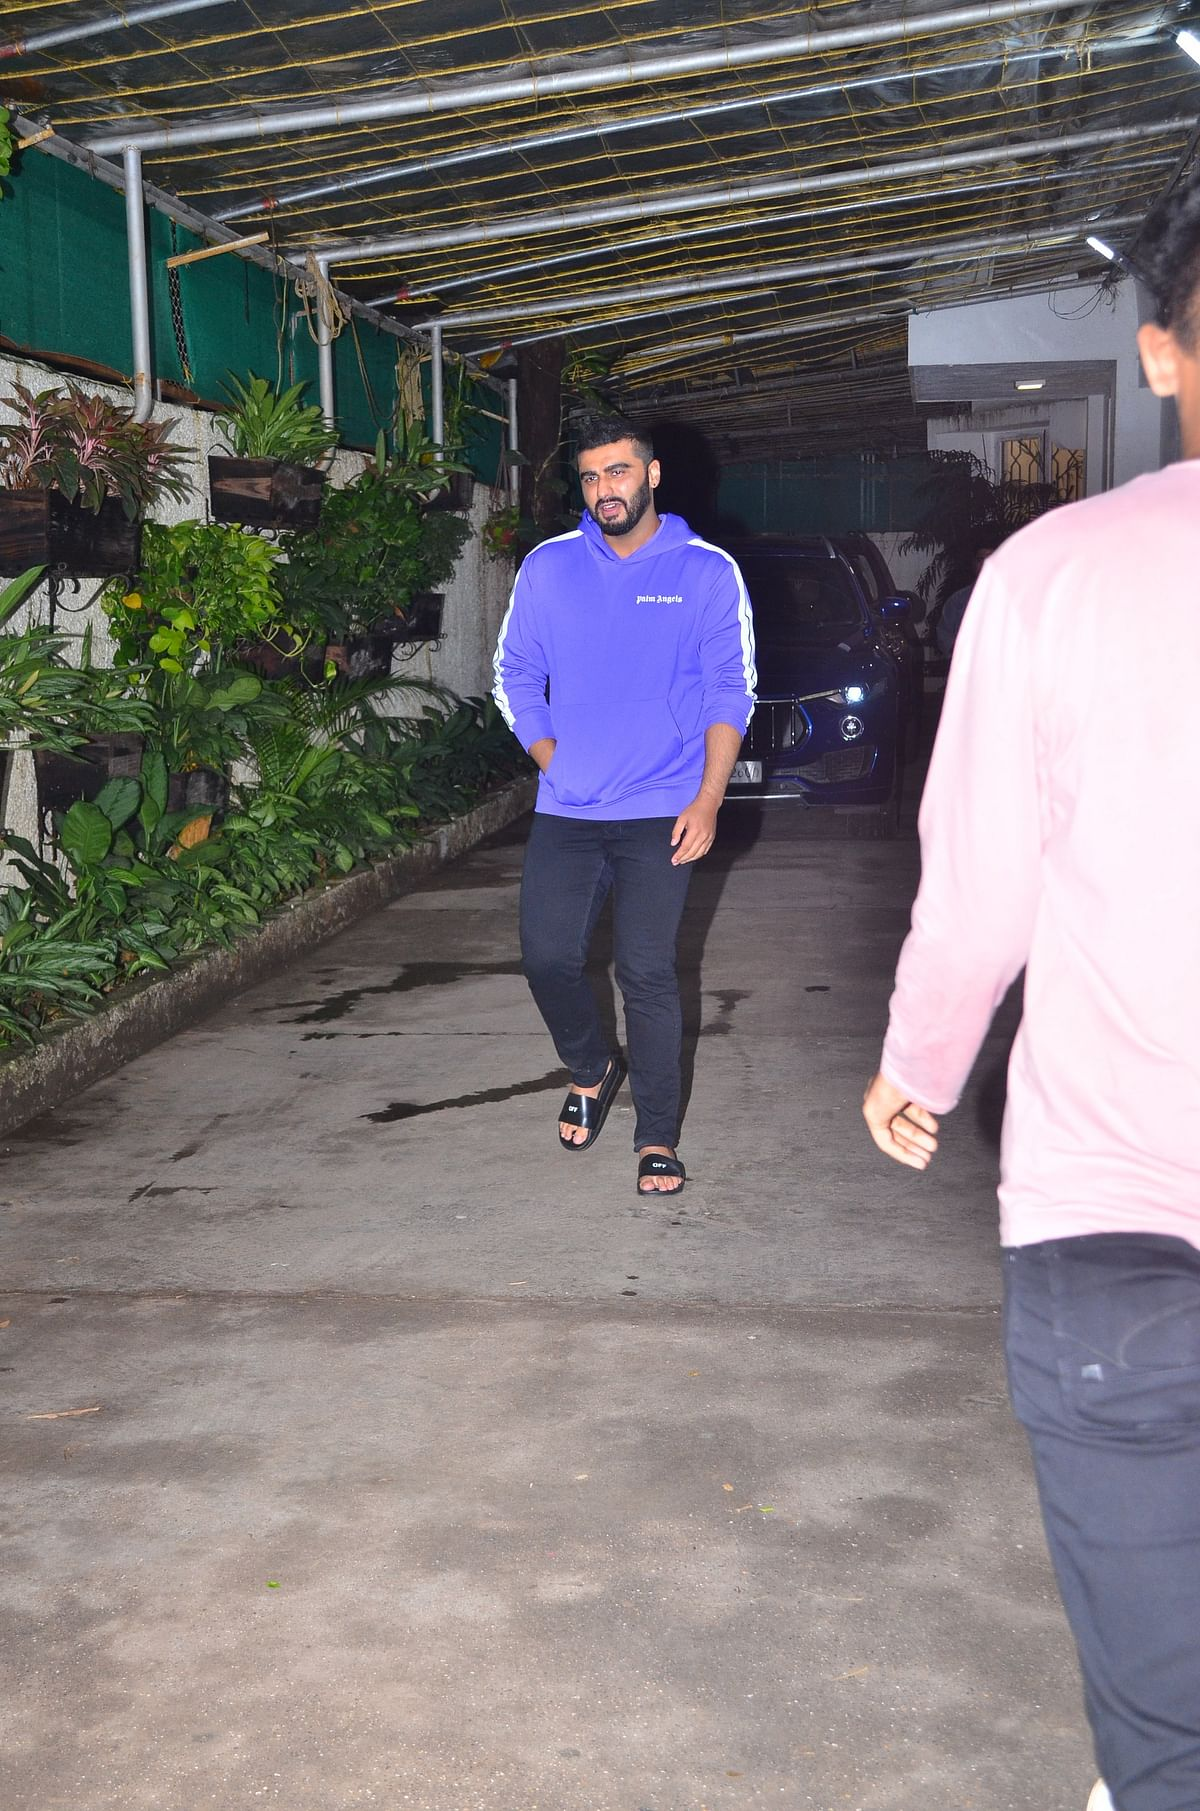 Arjun Kapoor was snapped outside the dubbing in Mumbai. The actor is dubbing for 'Panipat' movie character 'Sadashivrao Bhau'.